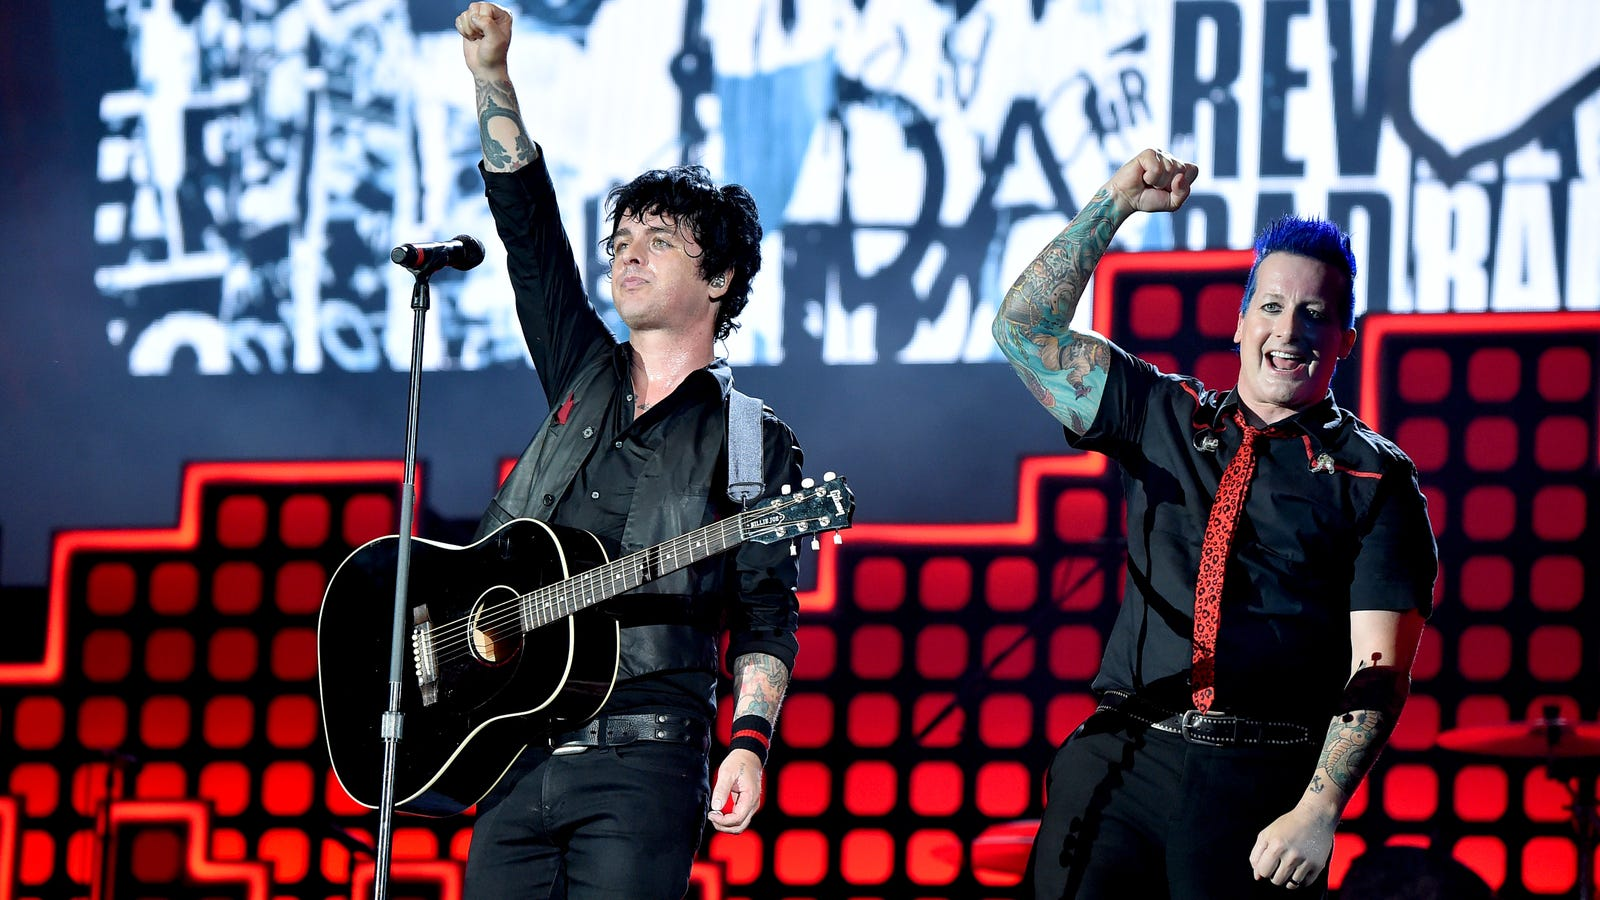 Green Day, Fall Out Boy, and Weezer announce the joint tour your snotty little teenage dreams were made of